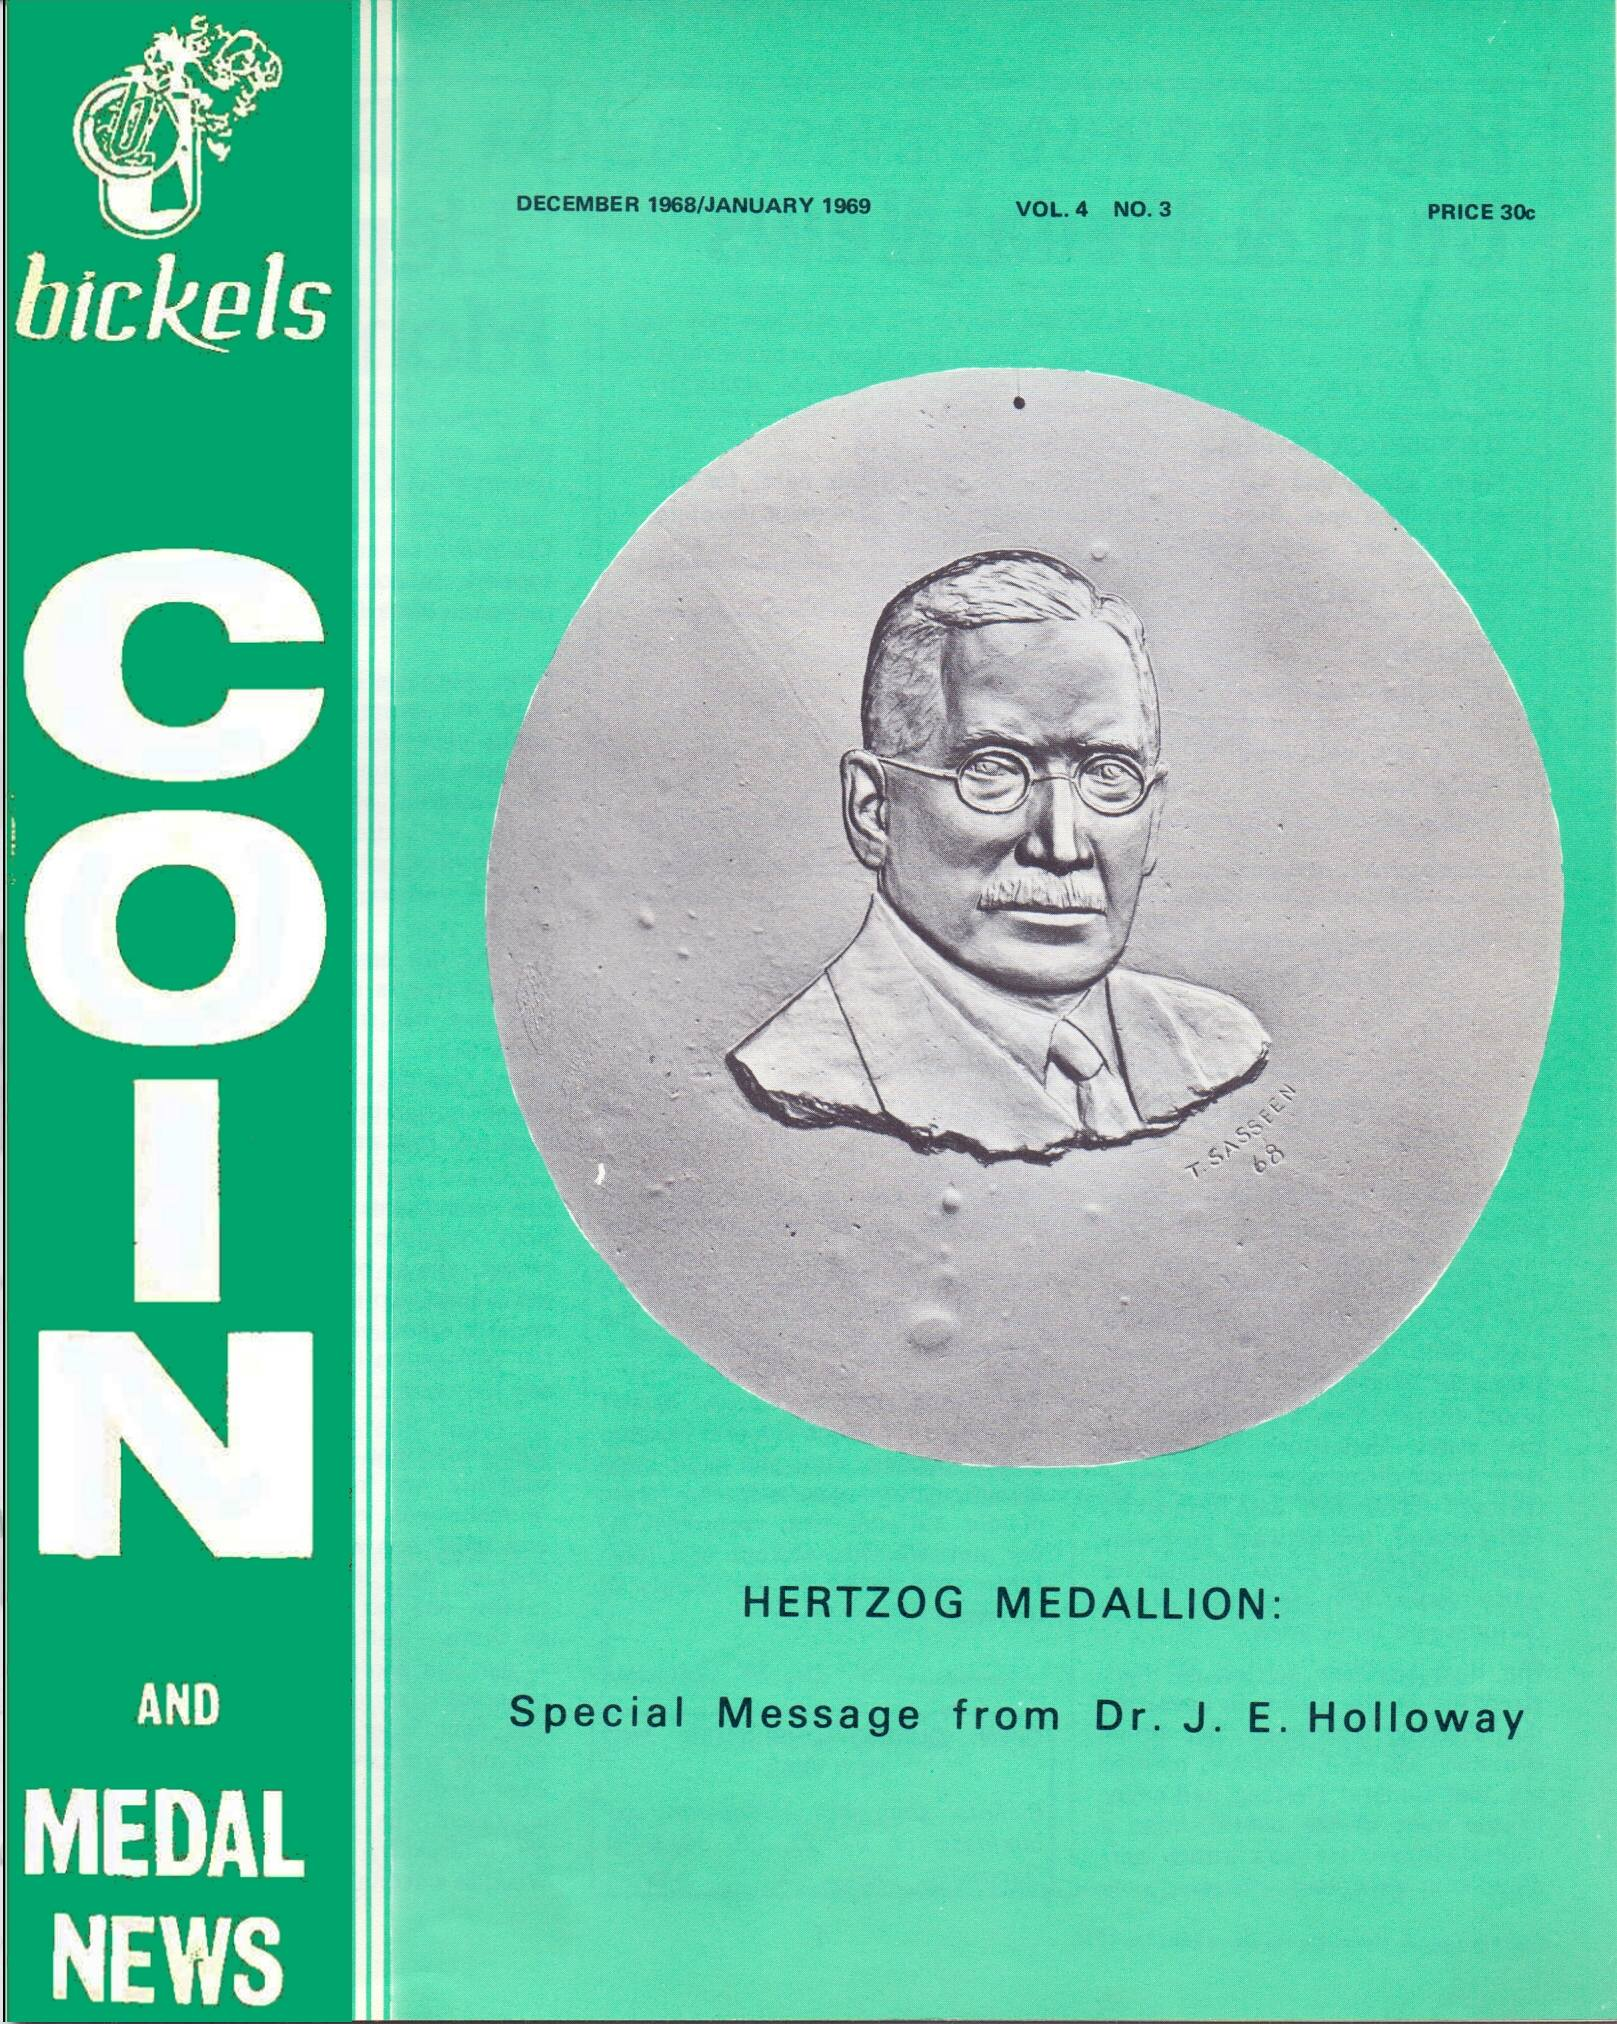 Bickels Coin & Medal News December 1968 January 1969 Vol 4 No 3